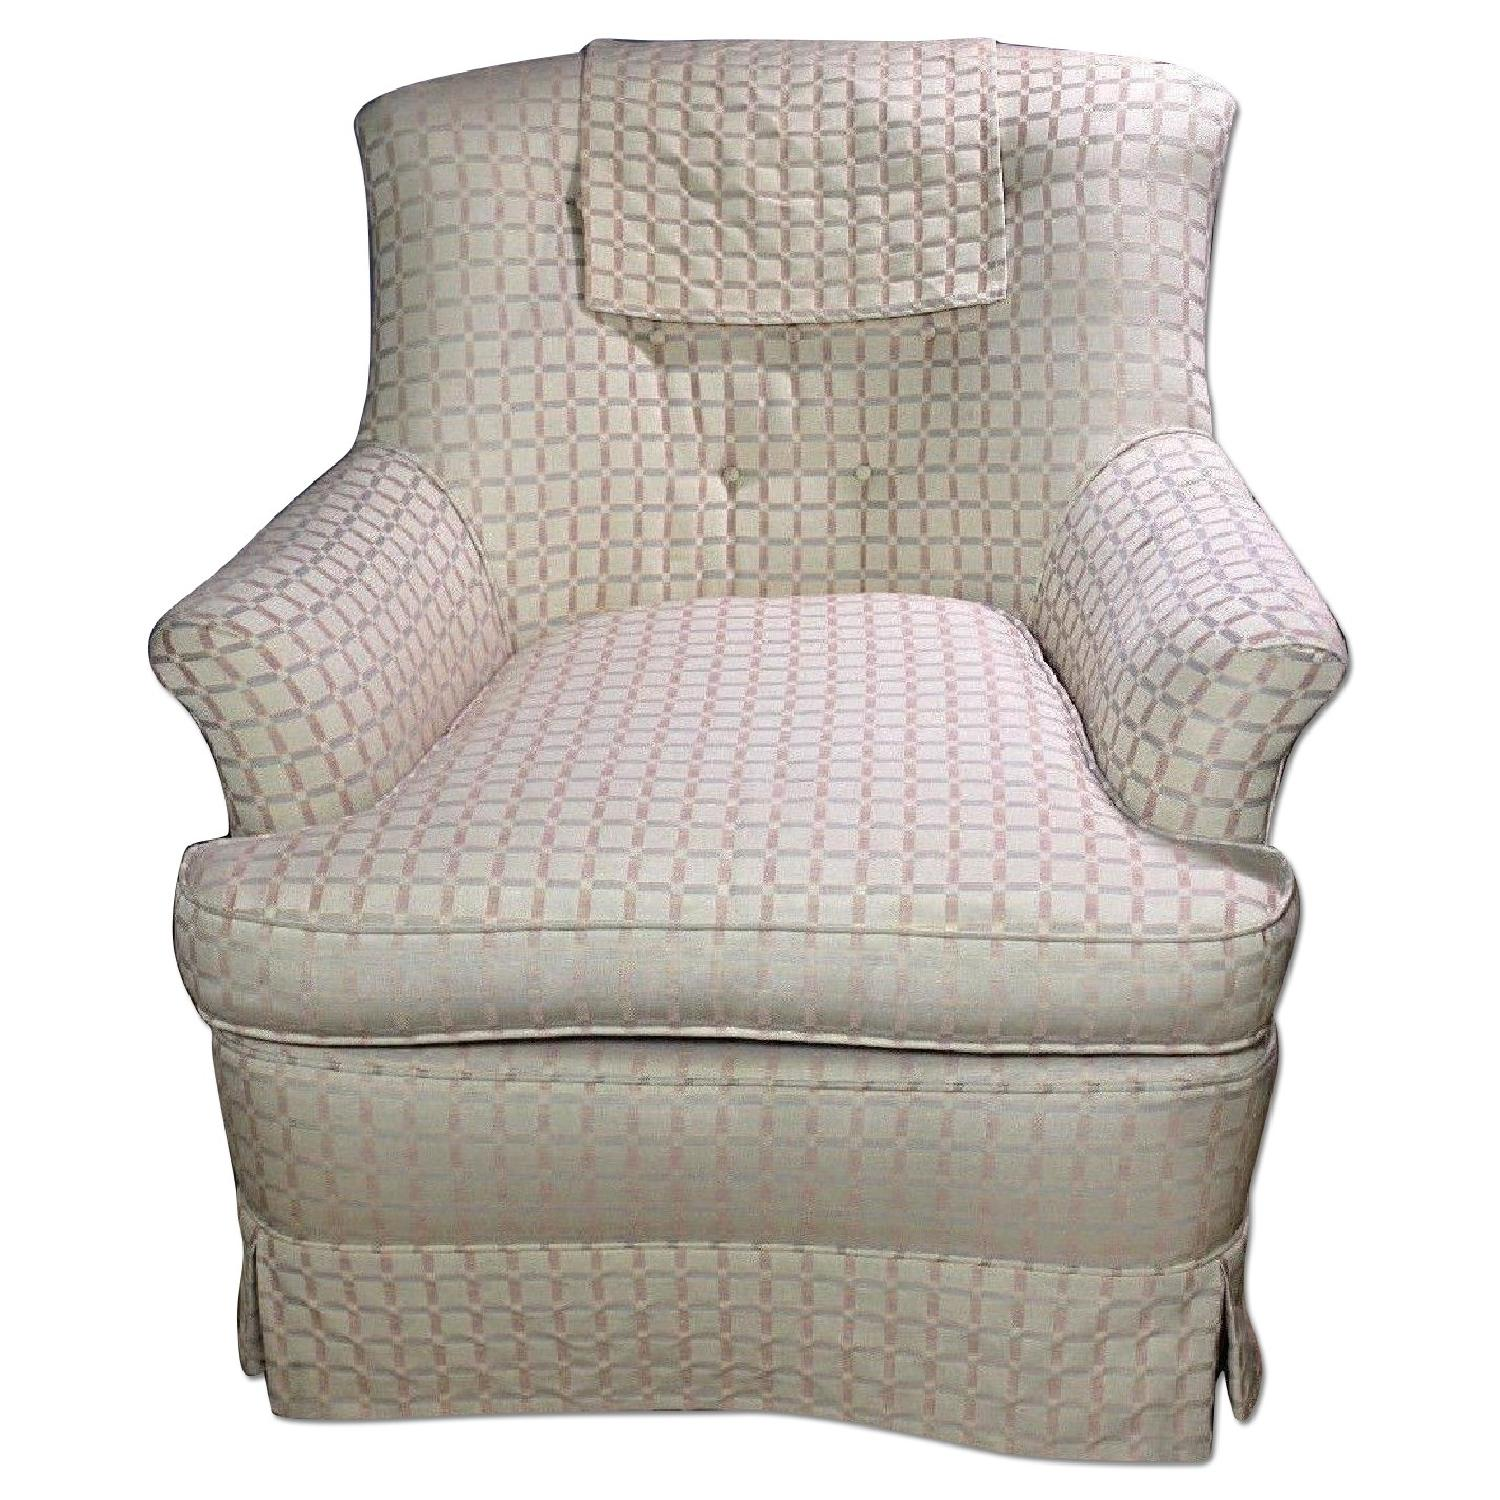 Upholstered Lounge Chair/Armchair